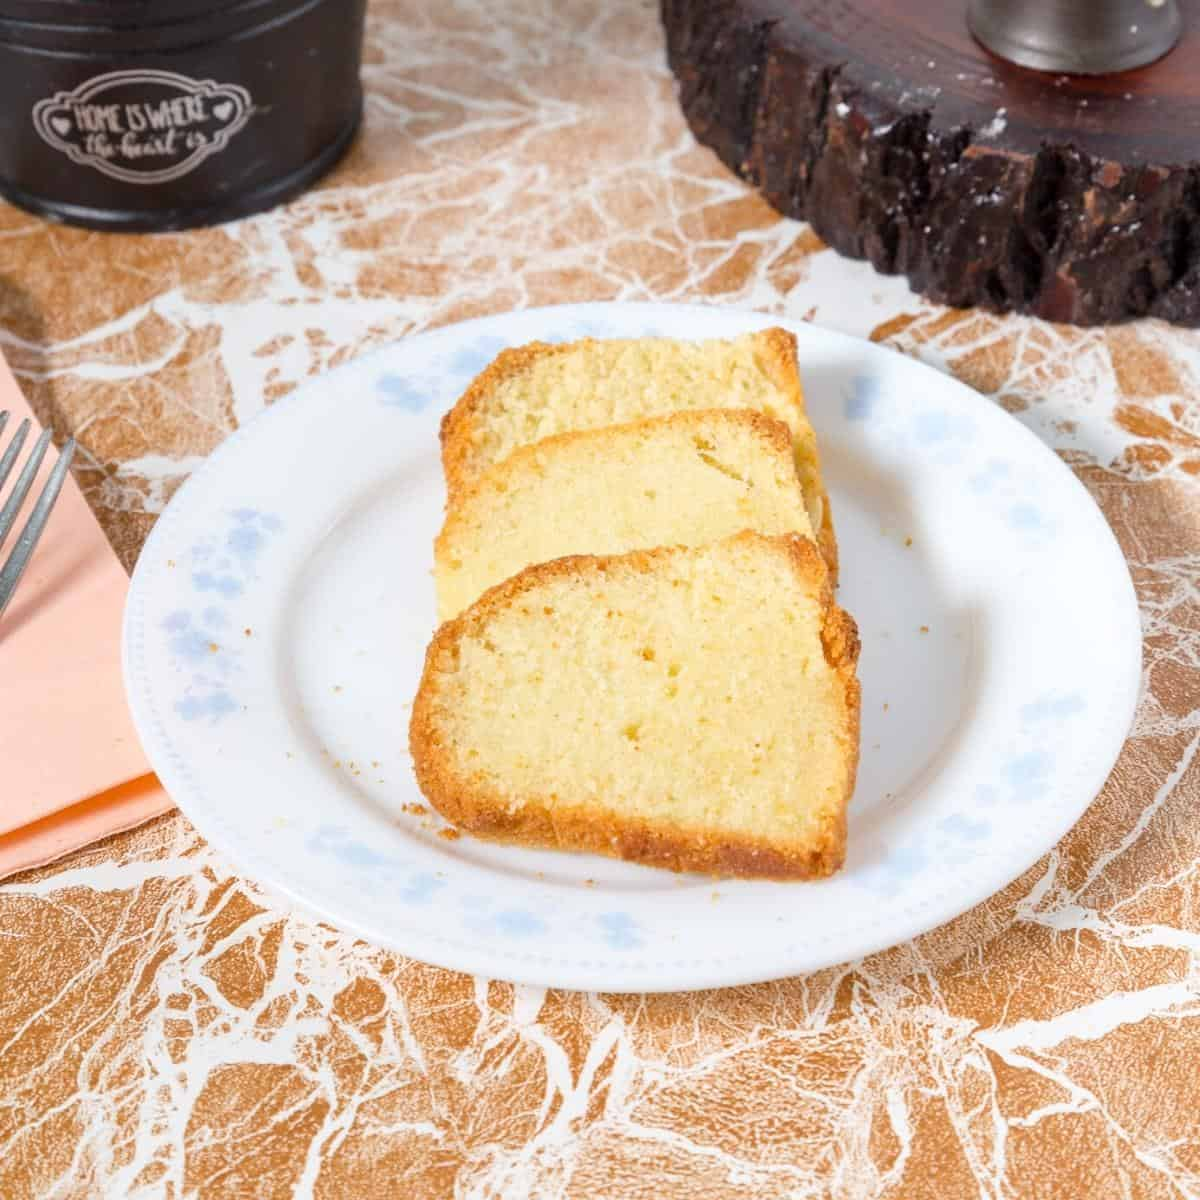 Slices of pound cake on a plate.